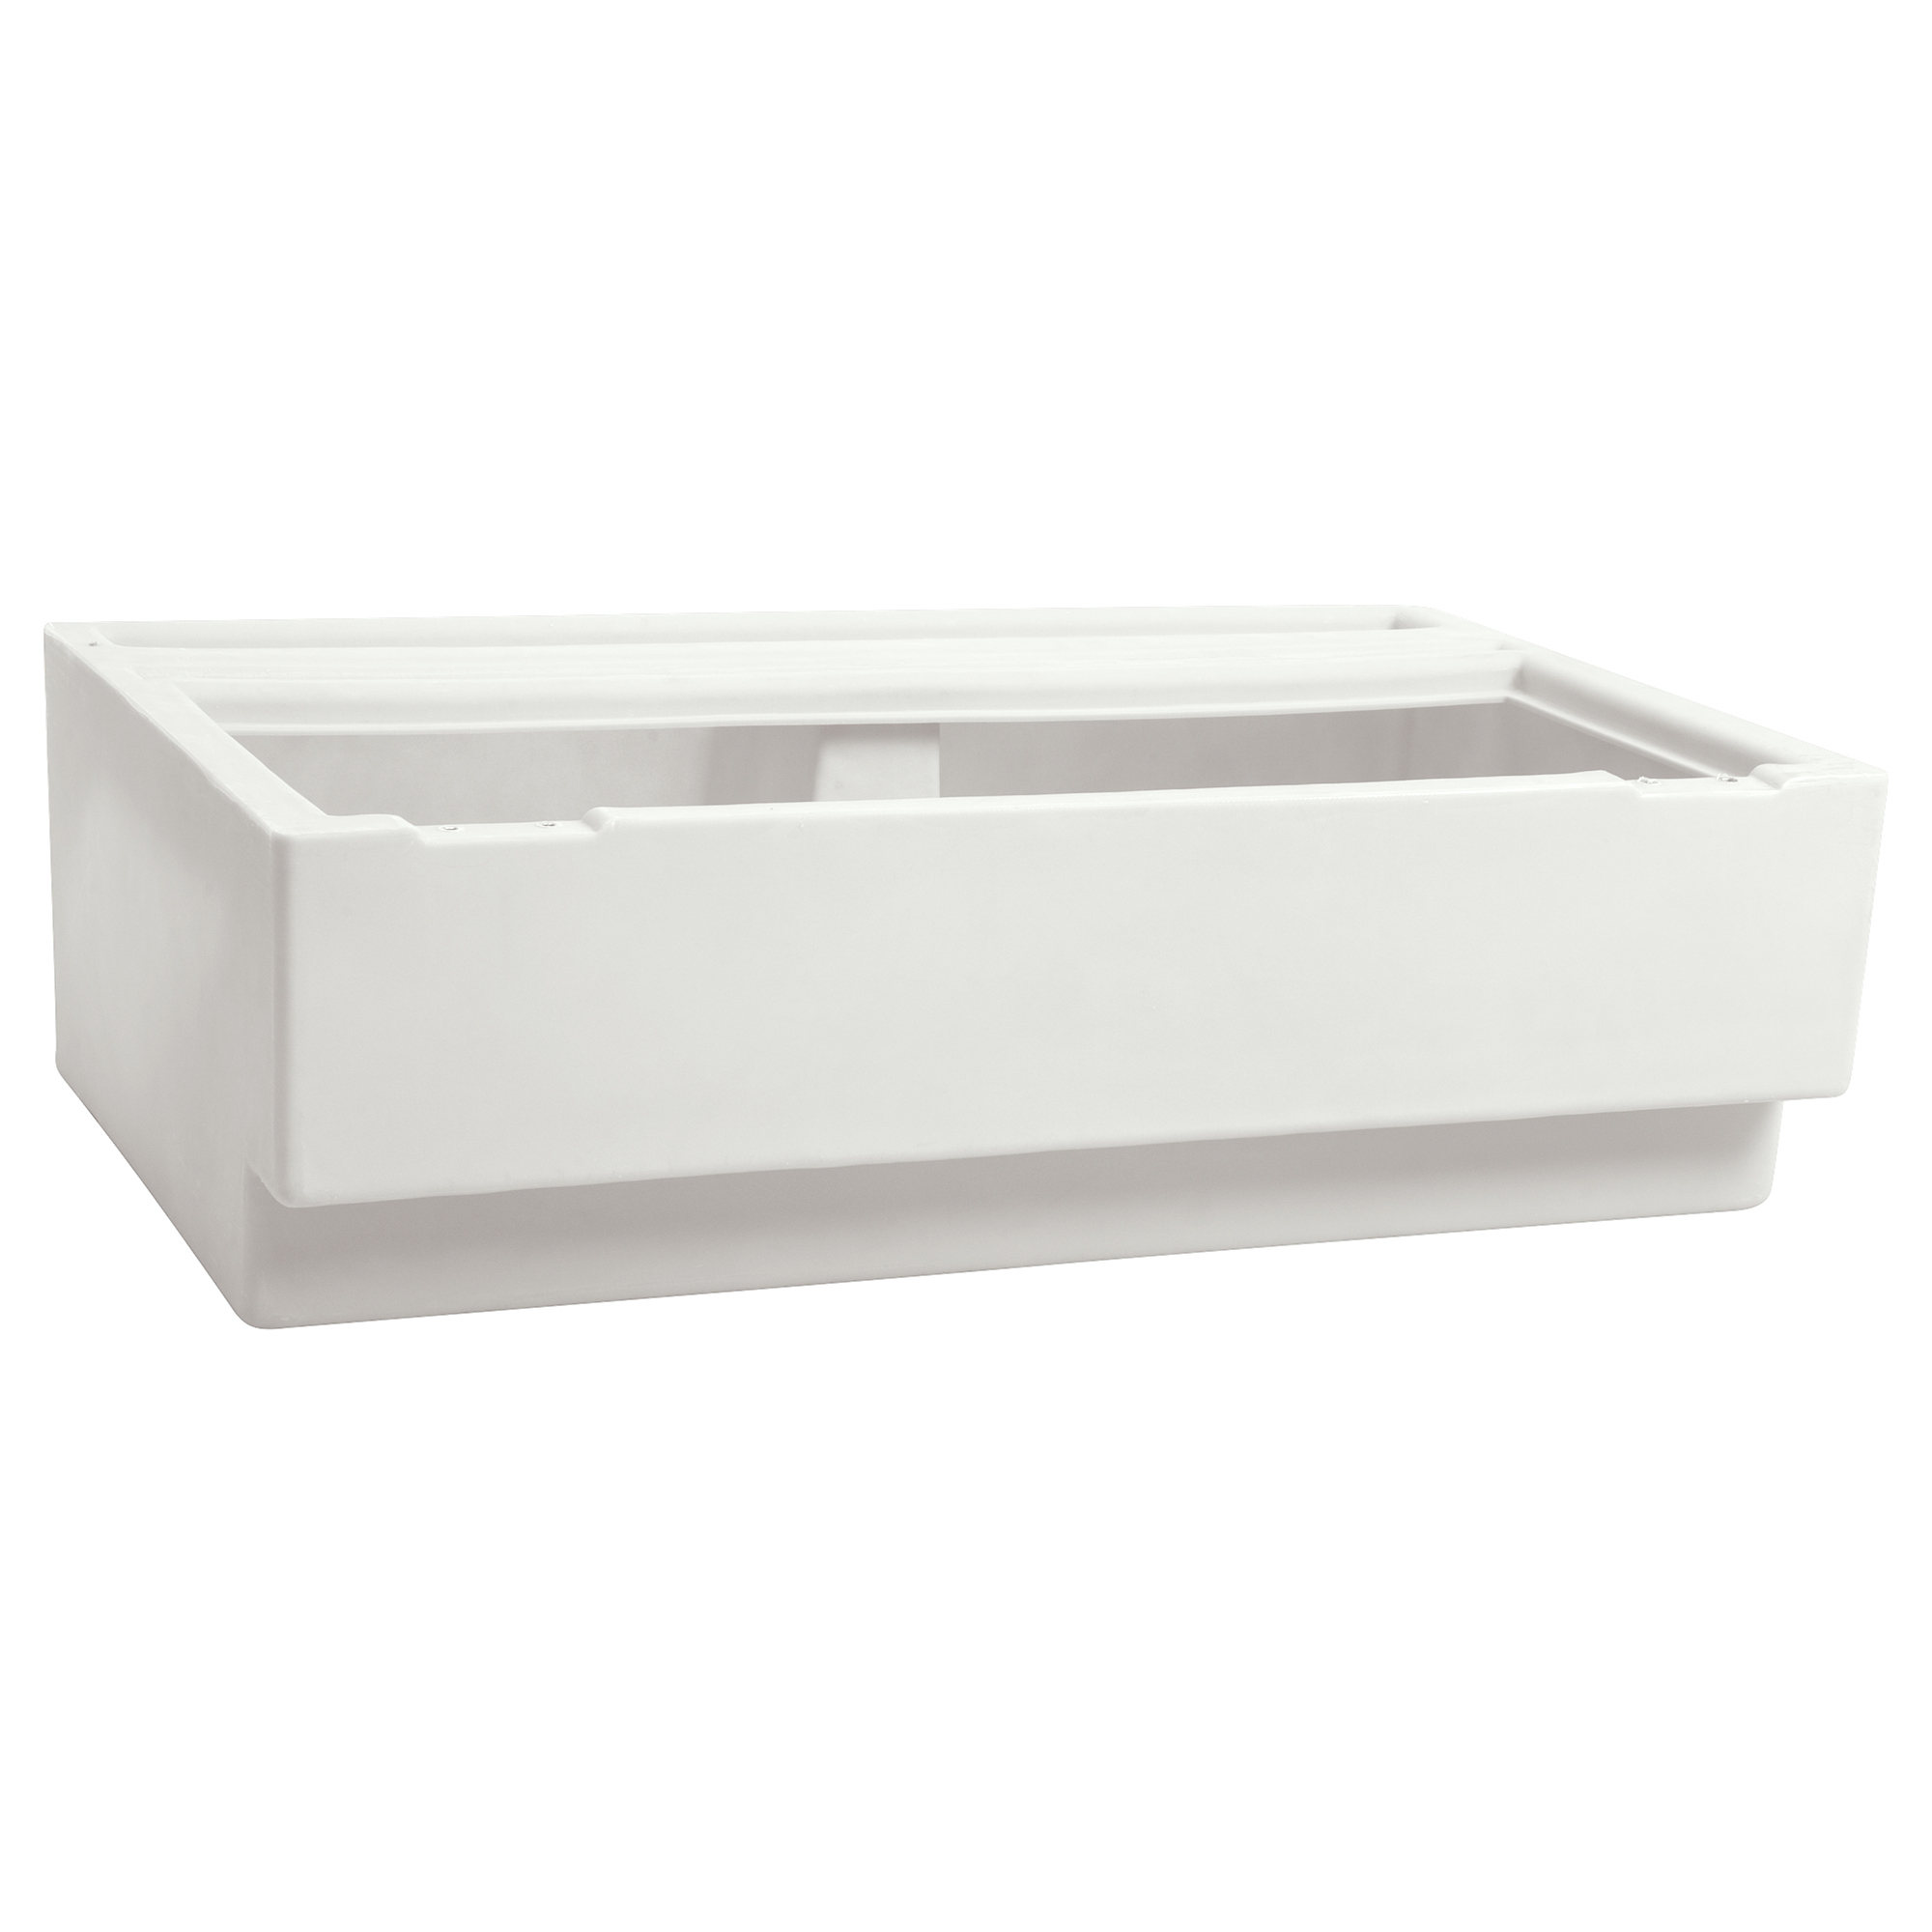 Toonmate Deluxe Pontoon Left-Side Corner Couch Base